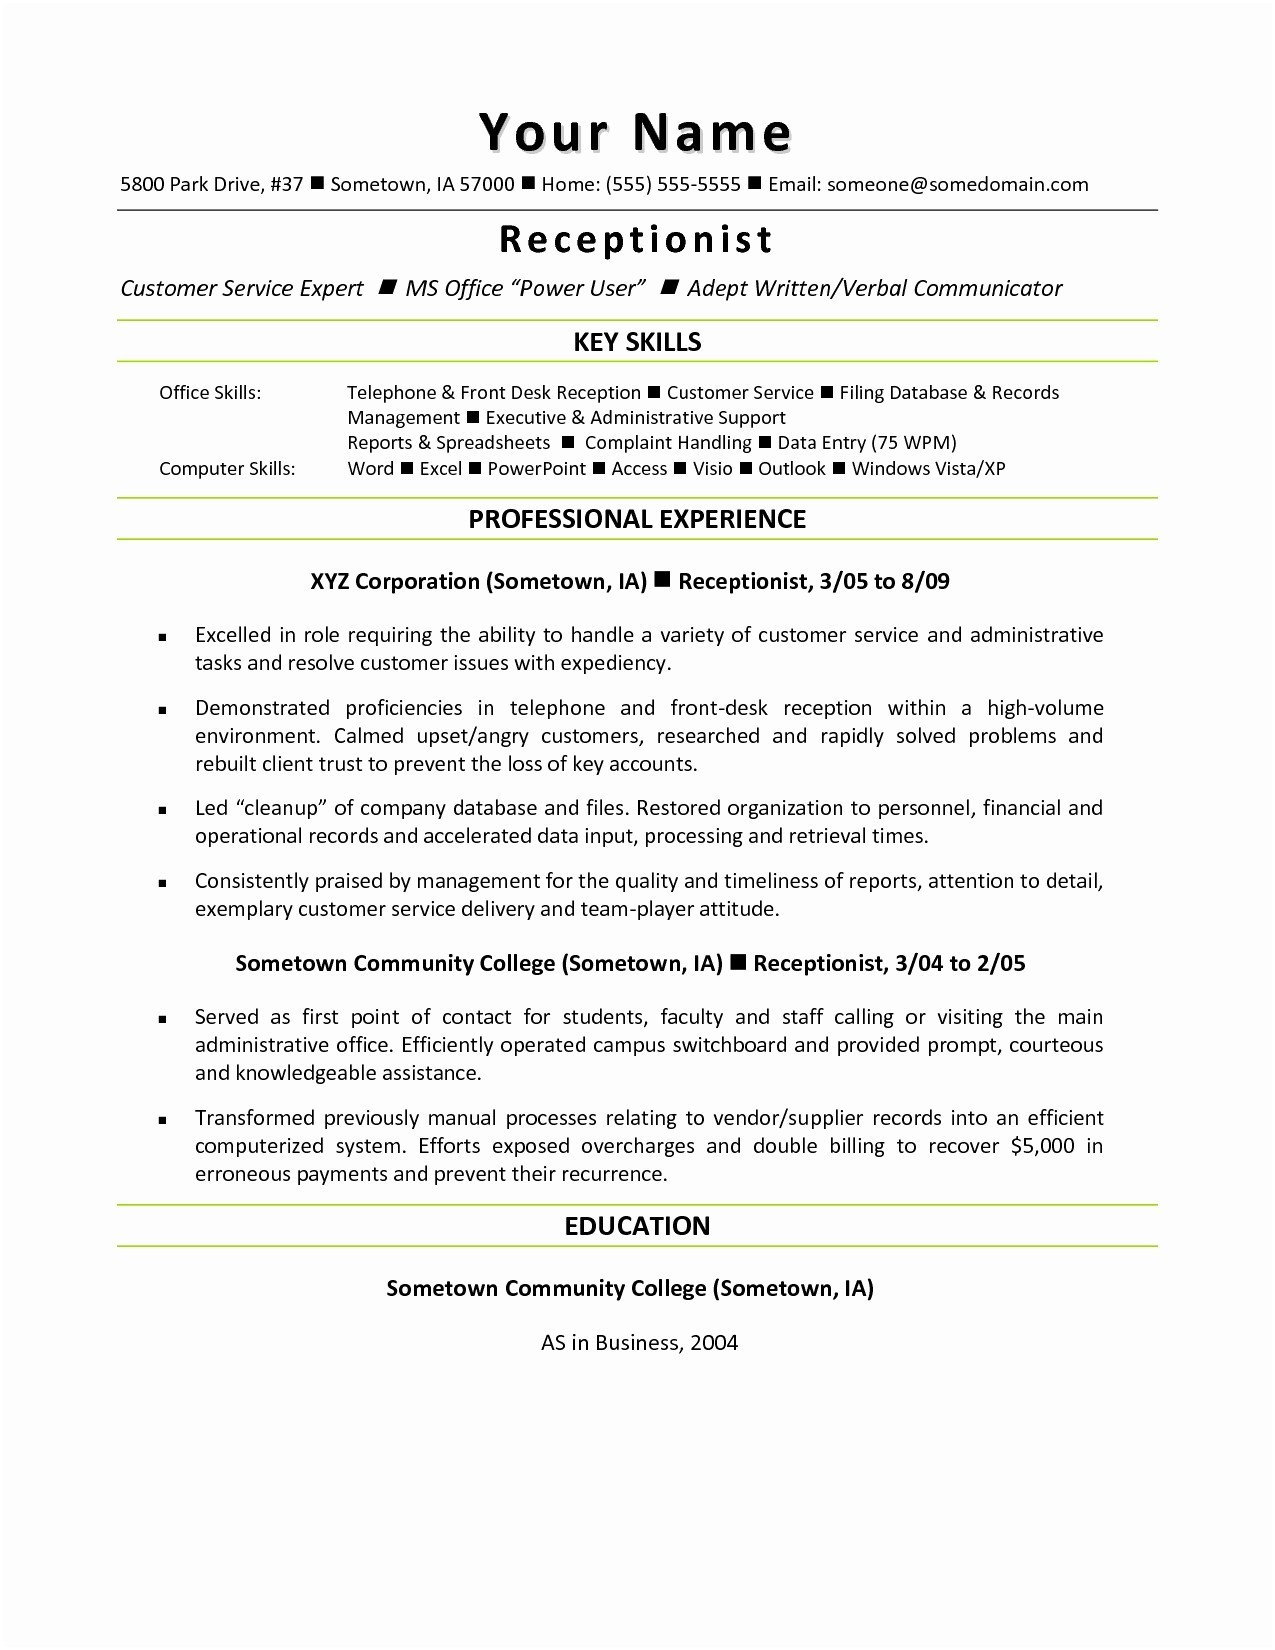 Business Cover Letter Template Microsoft Word - Resume Microsoft Word Fresh Resume Mail format Sample Fresh